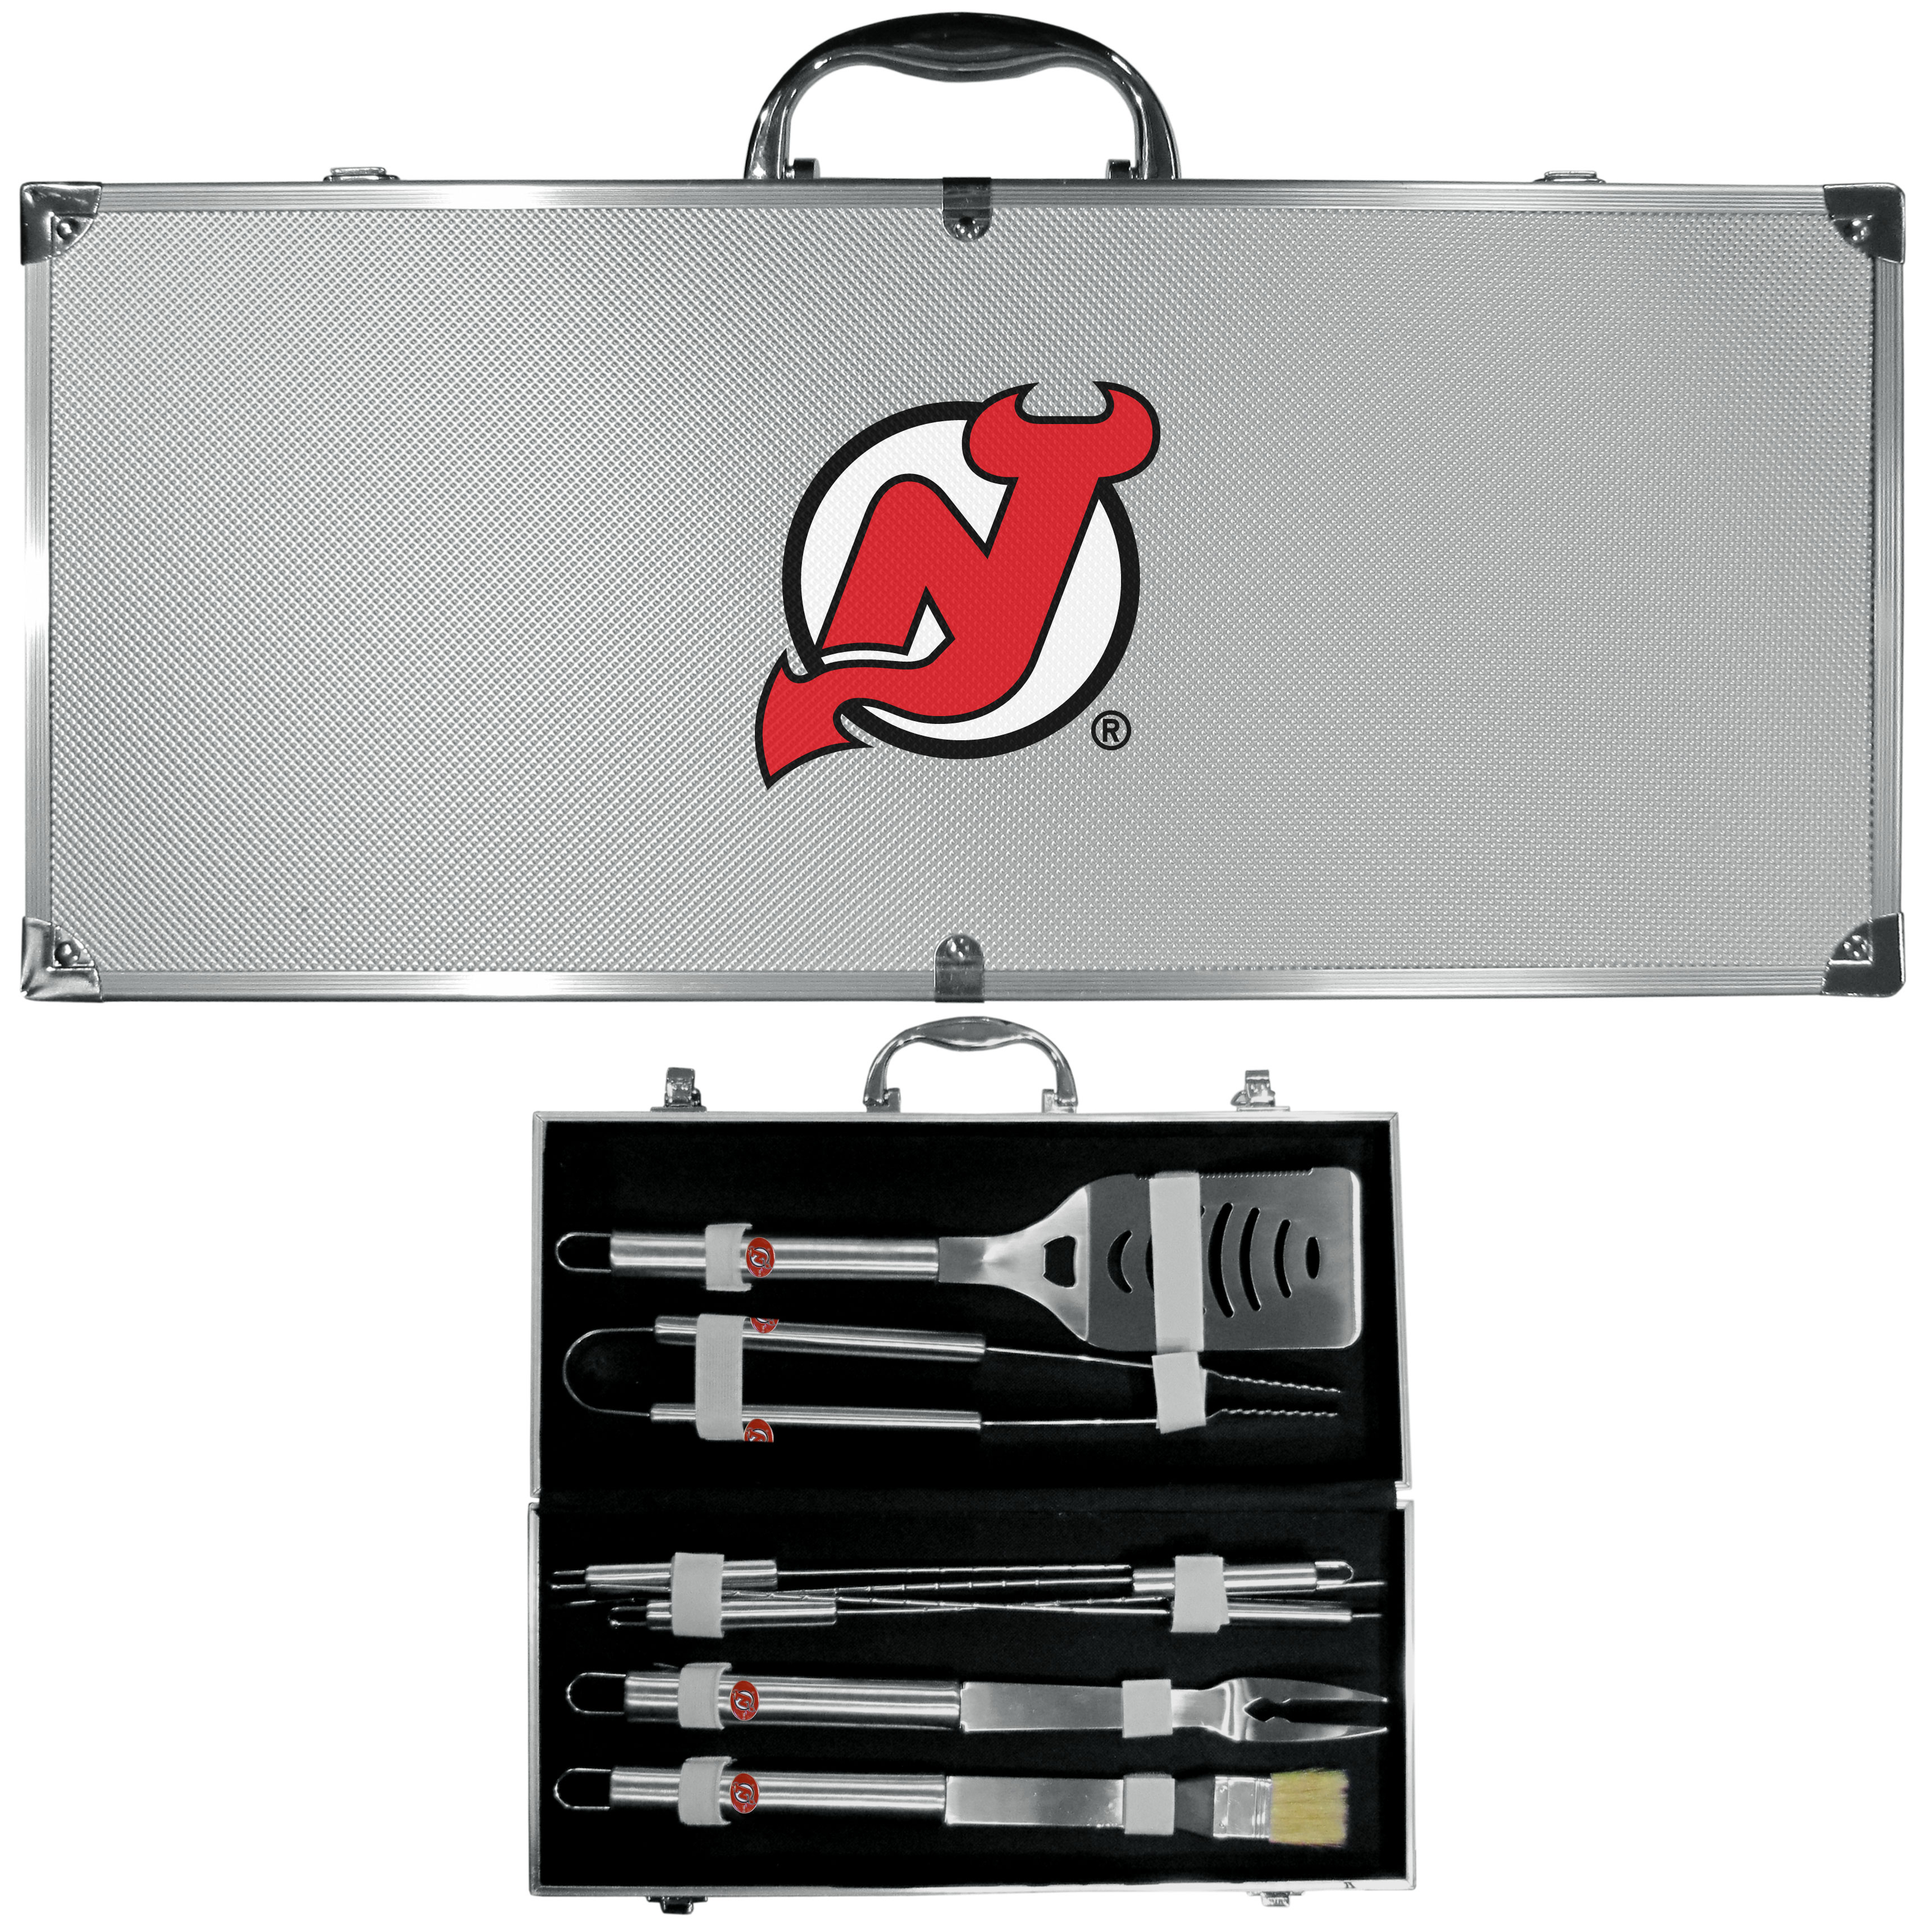 New Jersey Devils® 8 pc Stainless Steel BBQ Set w/Metal Case - This is the ultimate New Jersey Devils® tailgate accessory! The high quality, 420 grade stainless steel tools are durable and well-made enough to make even the pickiest grill master smile. This complete grill accessory kit includes; 4 skewers, spatula with bottle opener and serrated knife edge, basting brush, tongs and a fork. The 18 inch metal carrying case makes this a great outdoor kit making grilling an ease while camping, tailgating or while having a game day party on your patio. The tools are 17 inches long and feature a metal team emblem. The metal case features a large, metal team emblem with exceptional detail. This high-end men's gift is sure to be a hit as a present on Father's Day or Christmas.